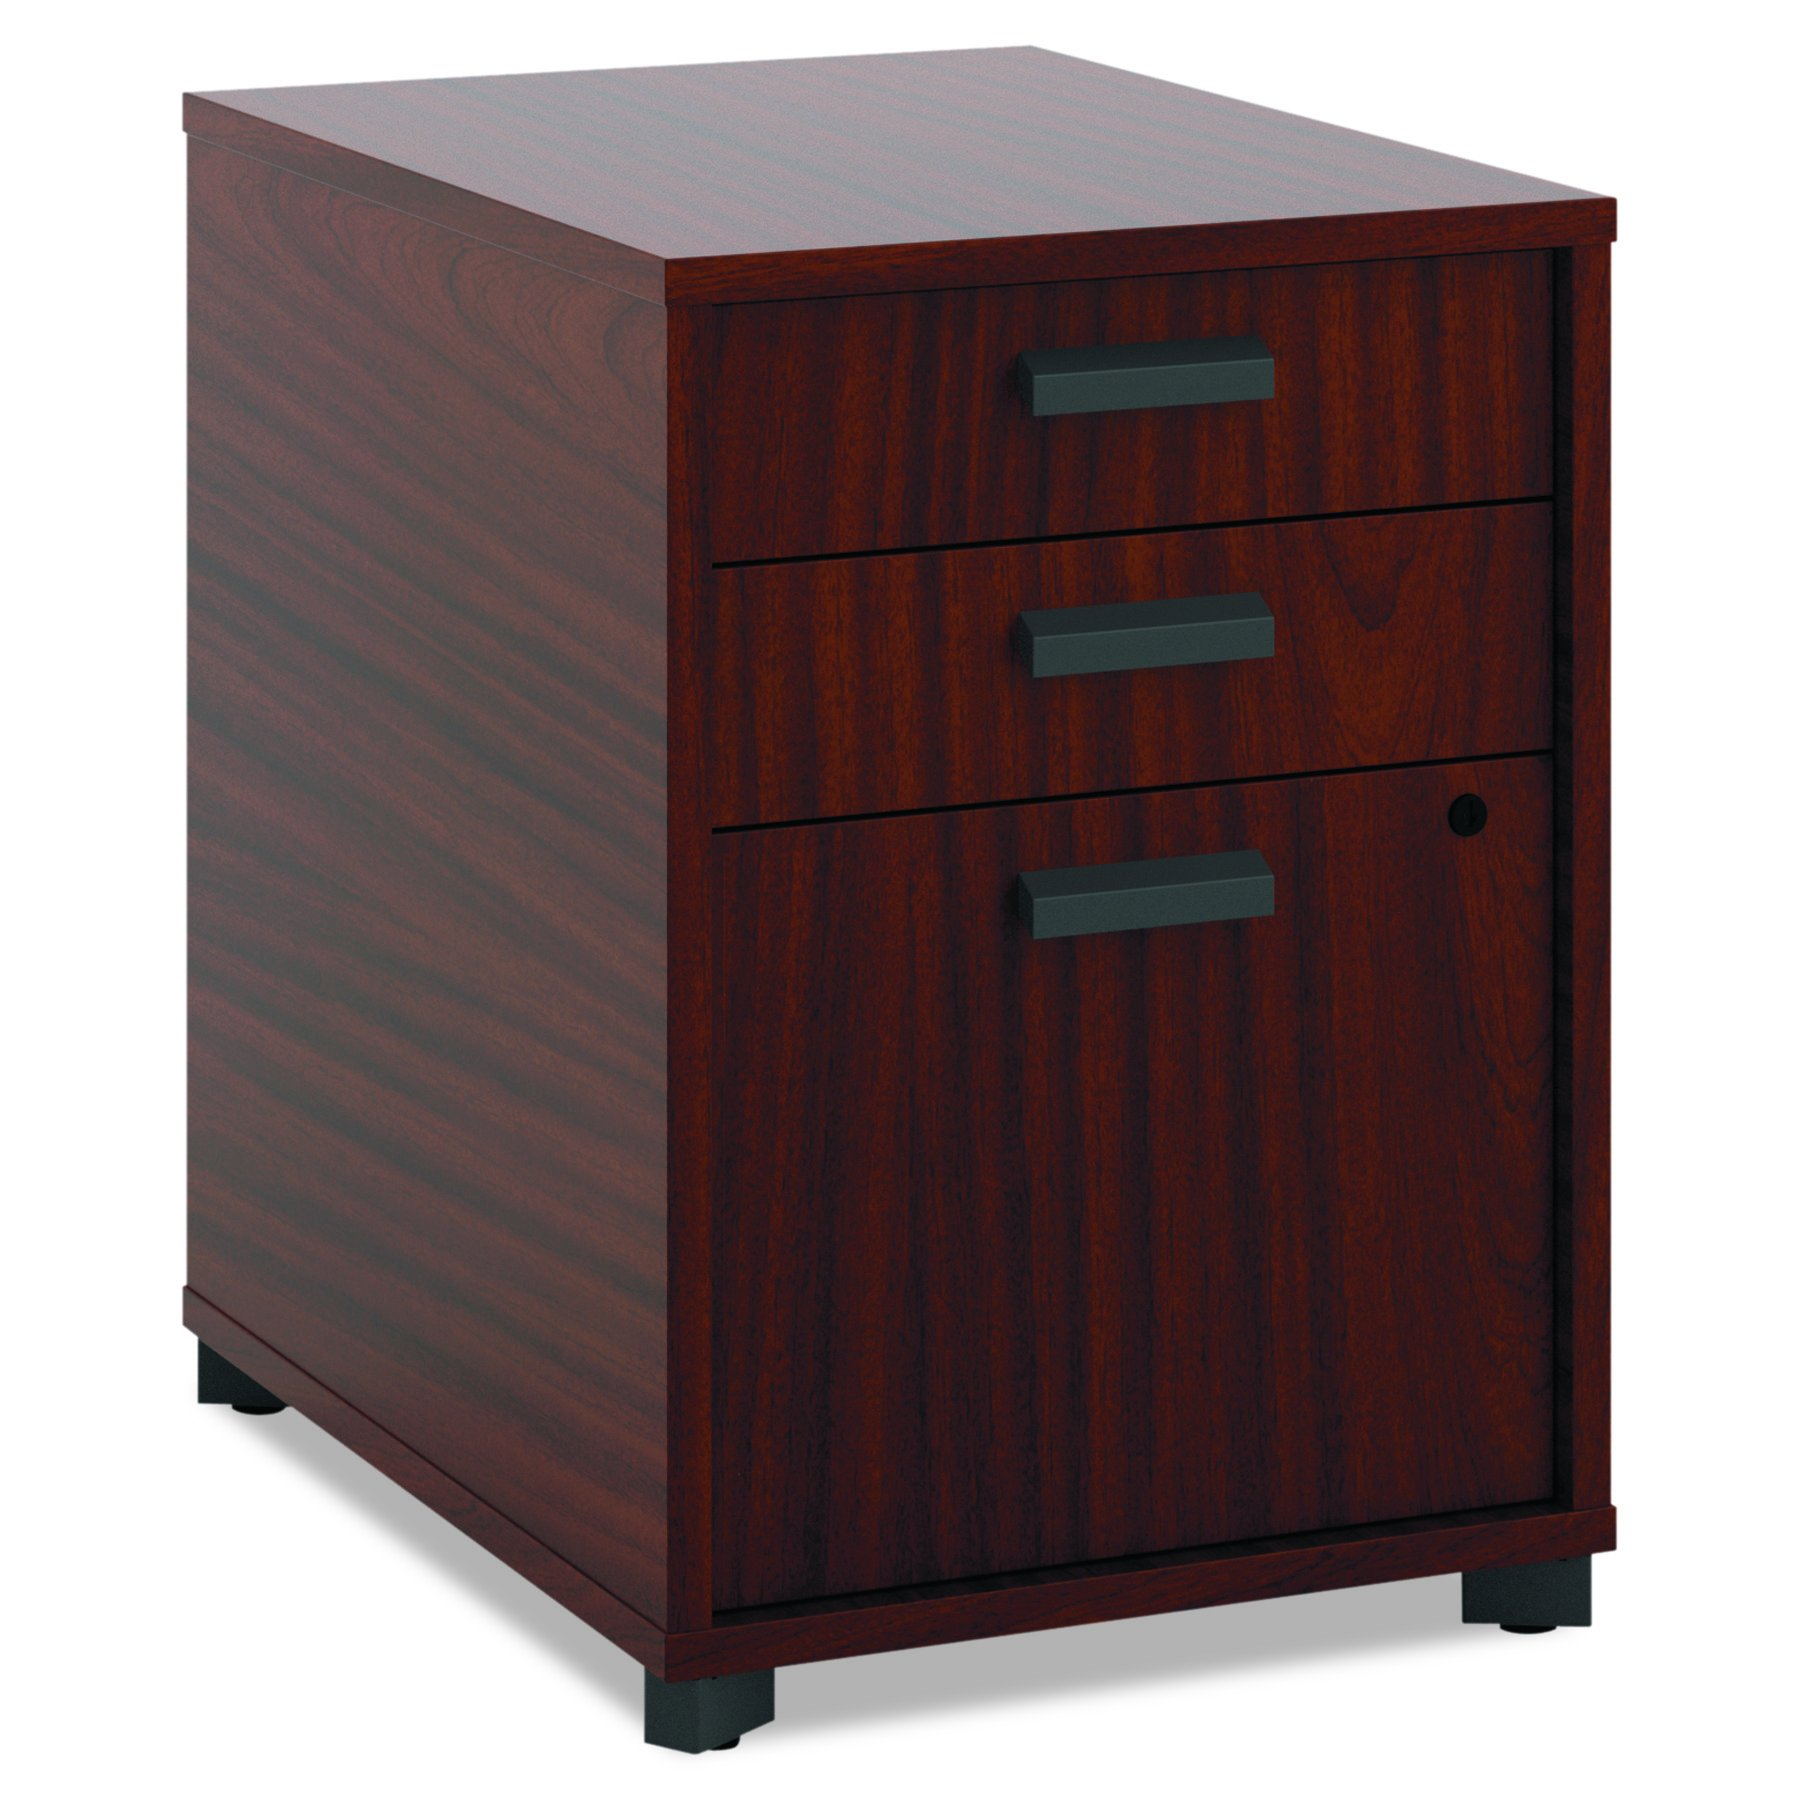 HON Manage Pedestal File - 2 Pencil Drawers with 1 File Drawer, 15-3/4''W, Chestnut (HMNG15PED)